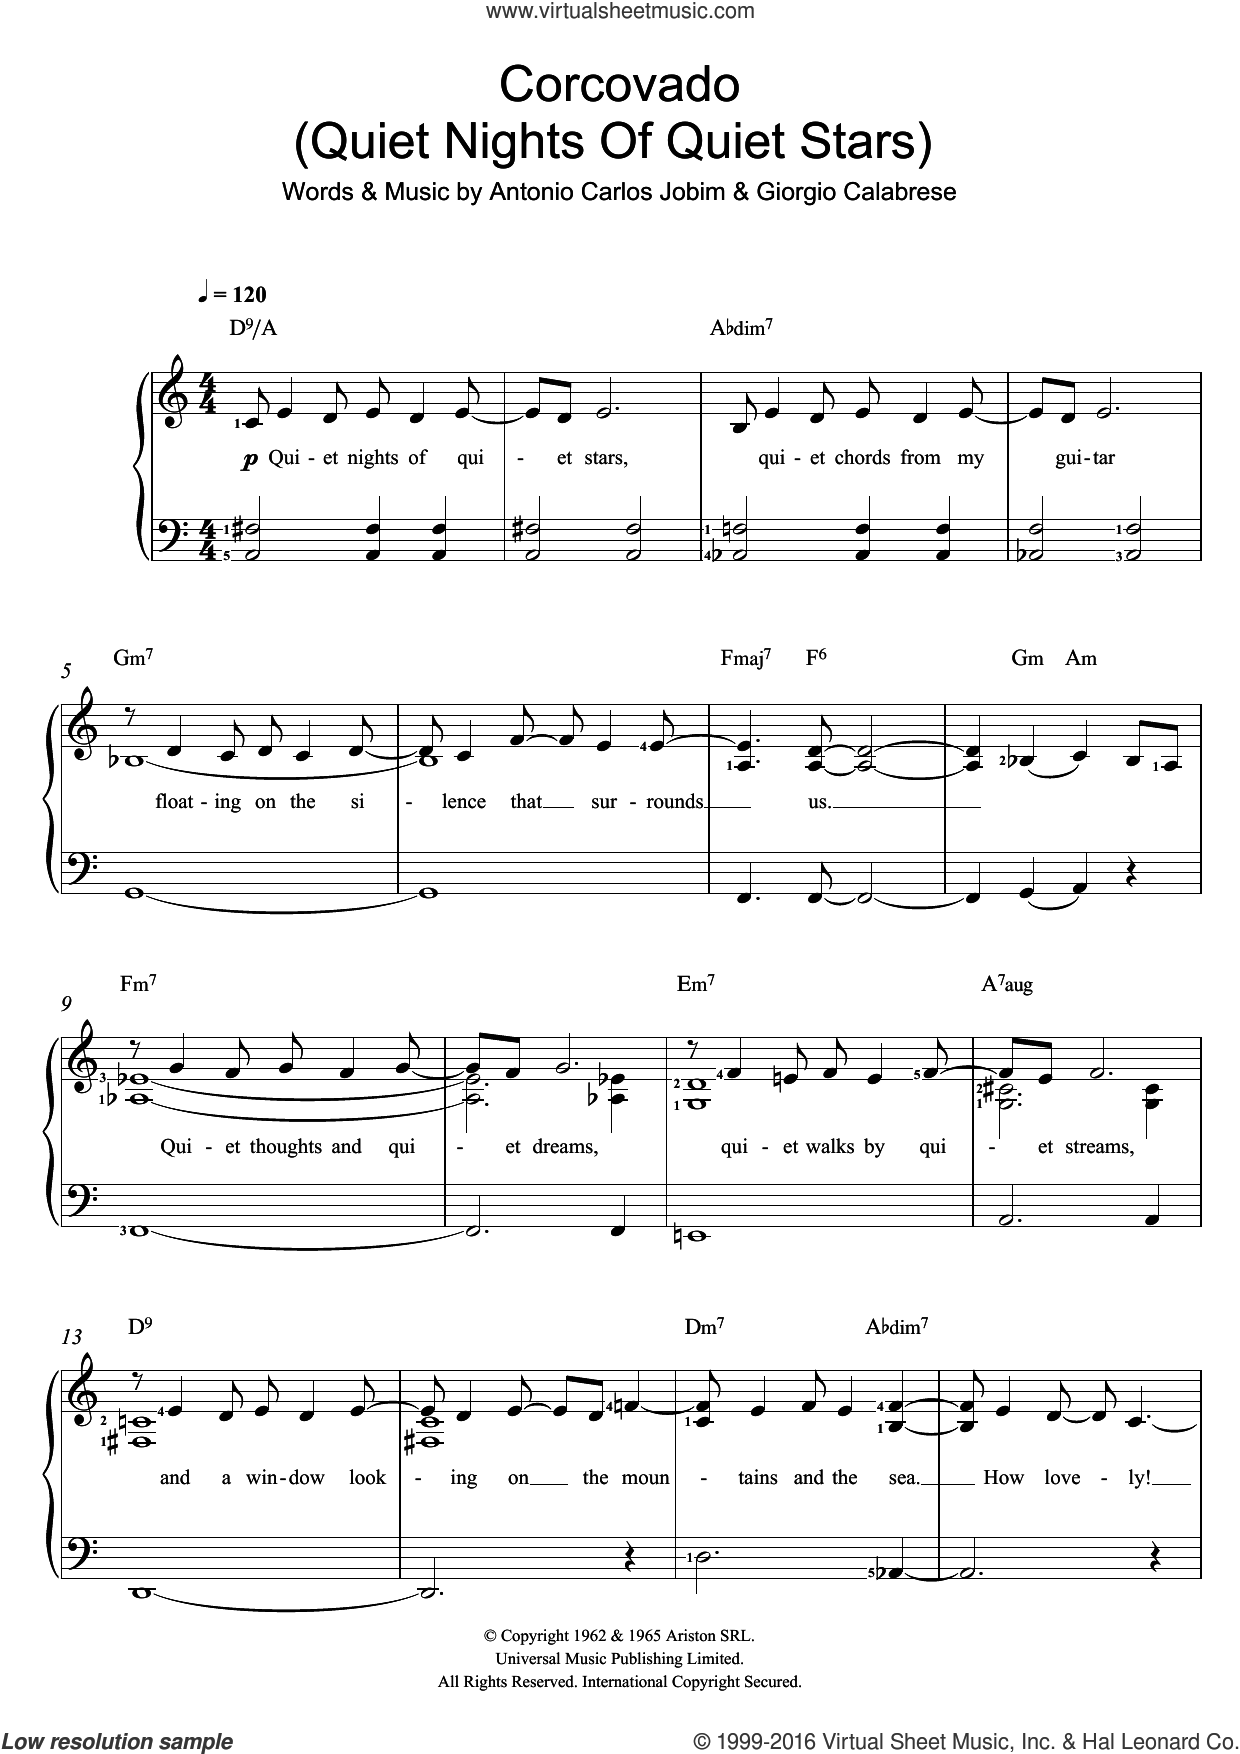 Corcovado (Quiet Nights Of Quiet Stars) sheet music for voice and piano by Giorgio Calabrese